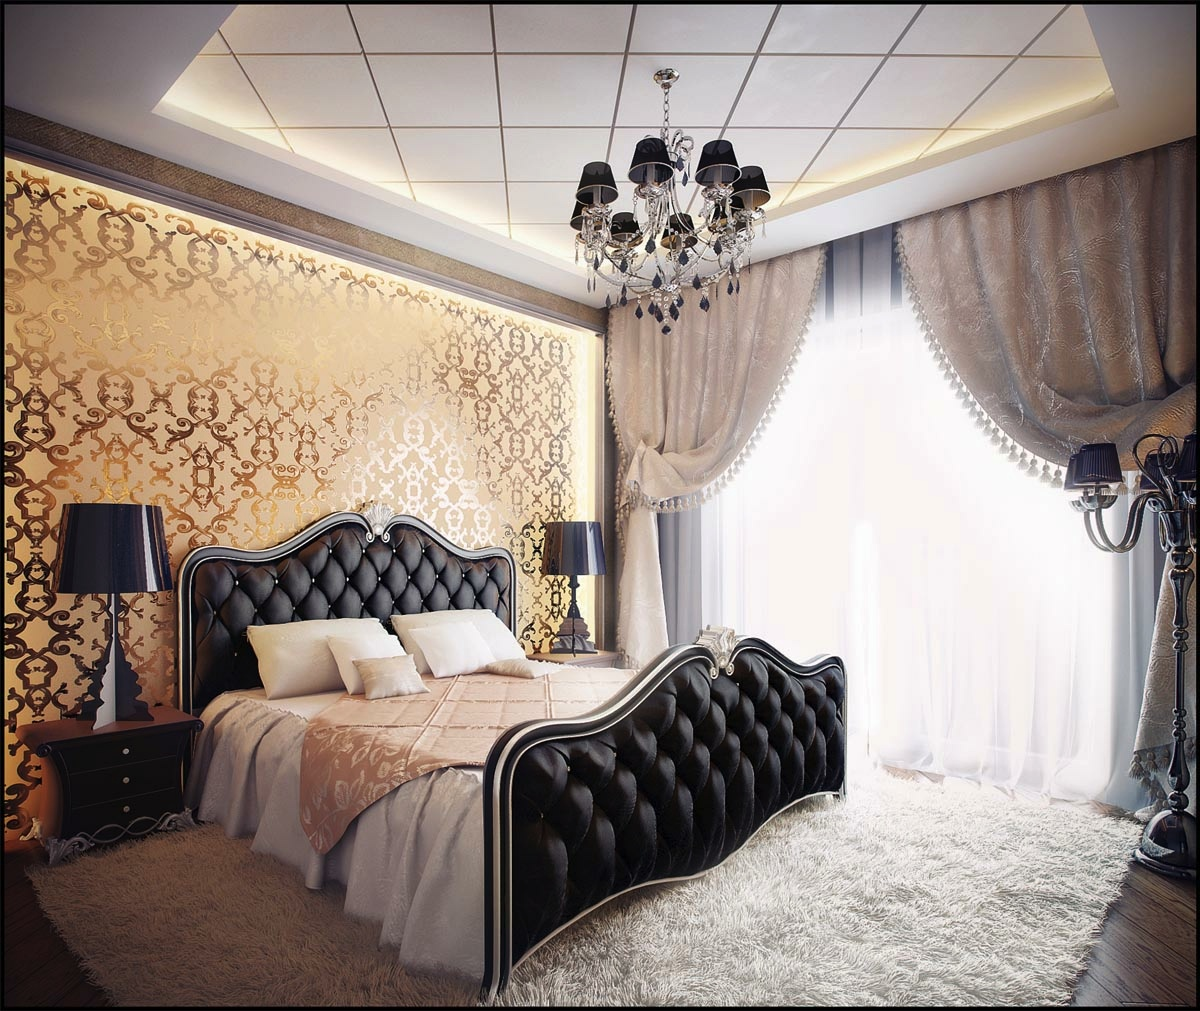 bedrooms with traditional elegance - Bedrooms By Design